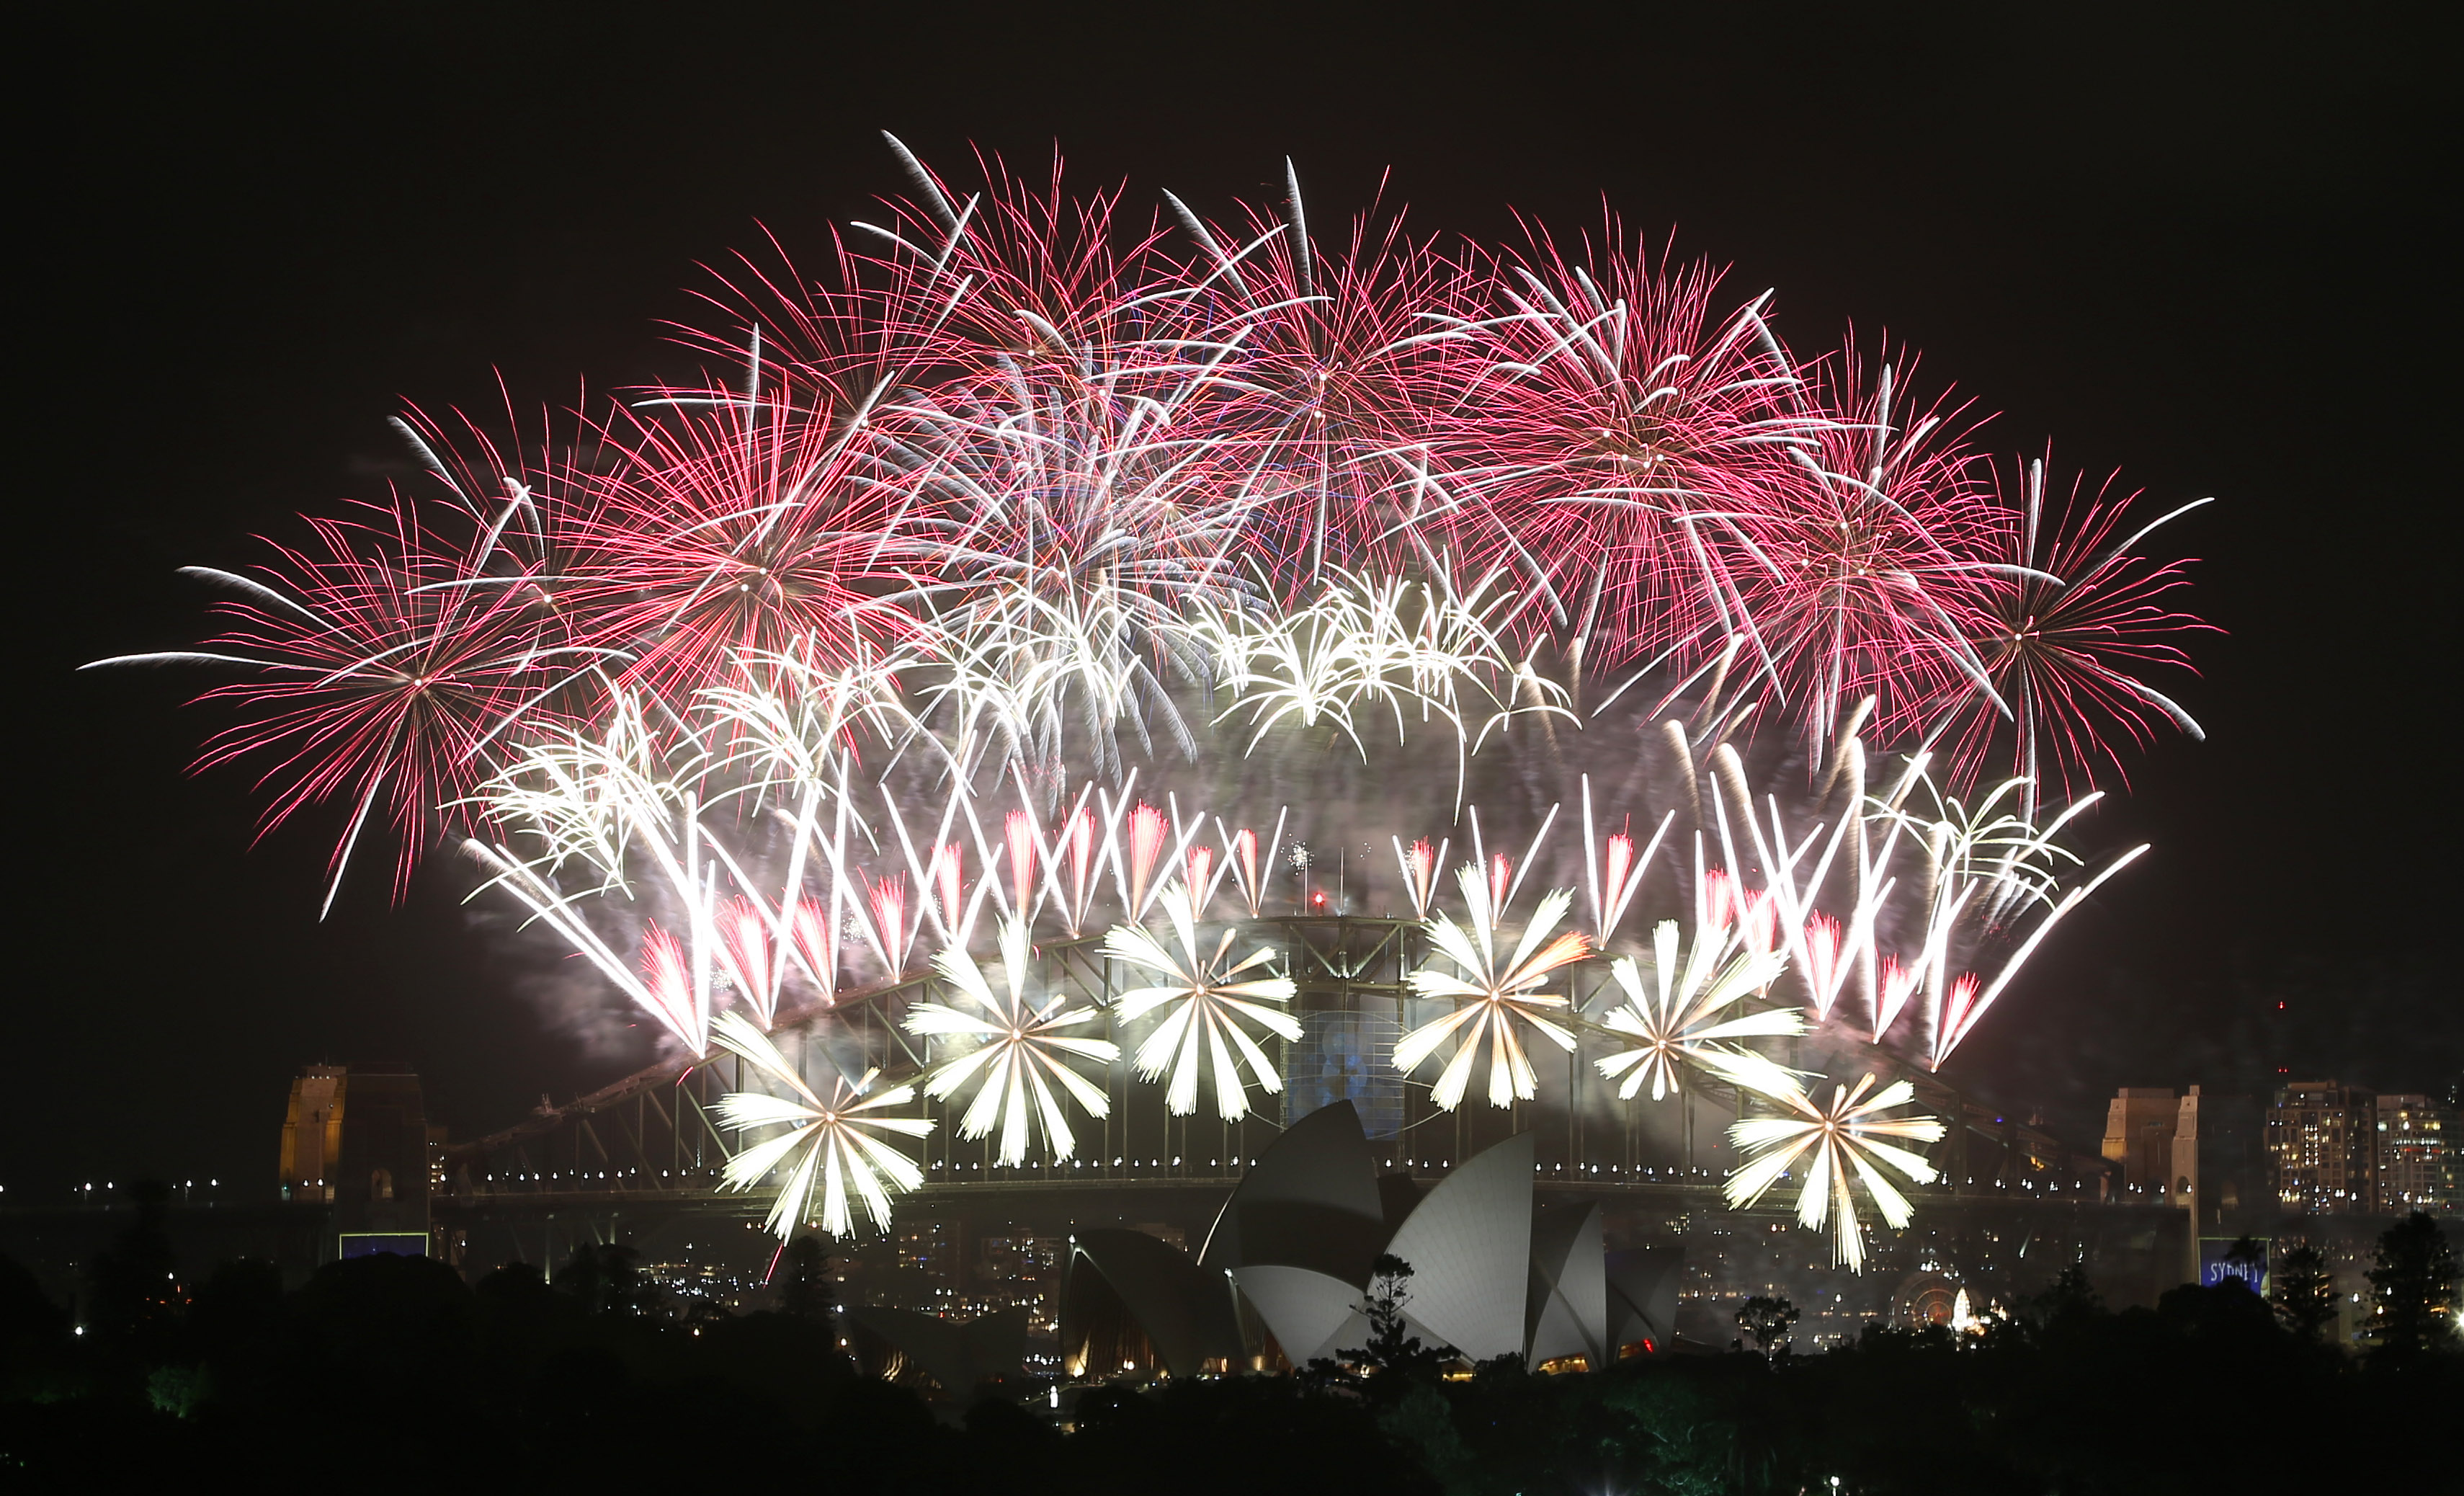 Revelers Start Ringing In 2014 With Fireworks